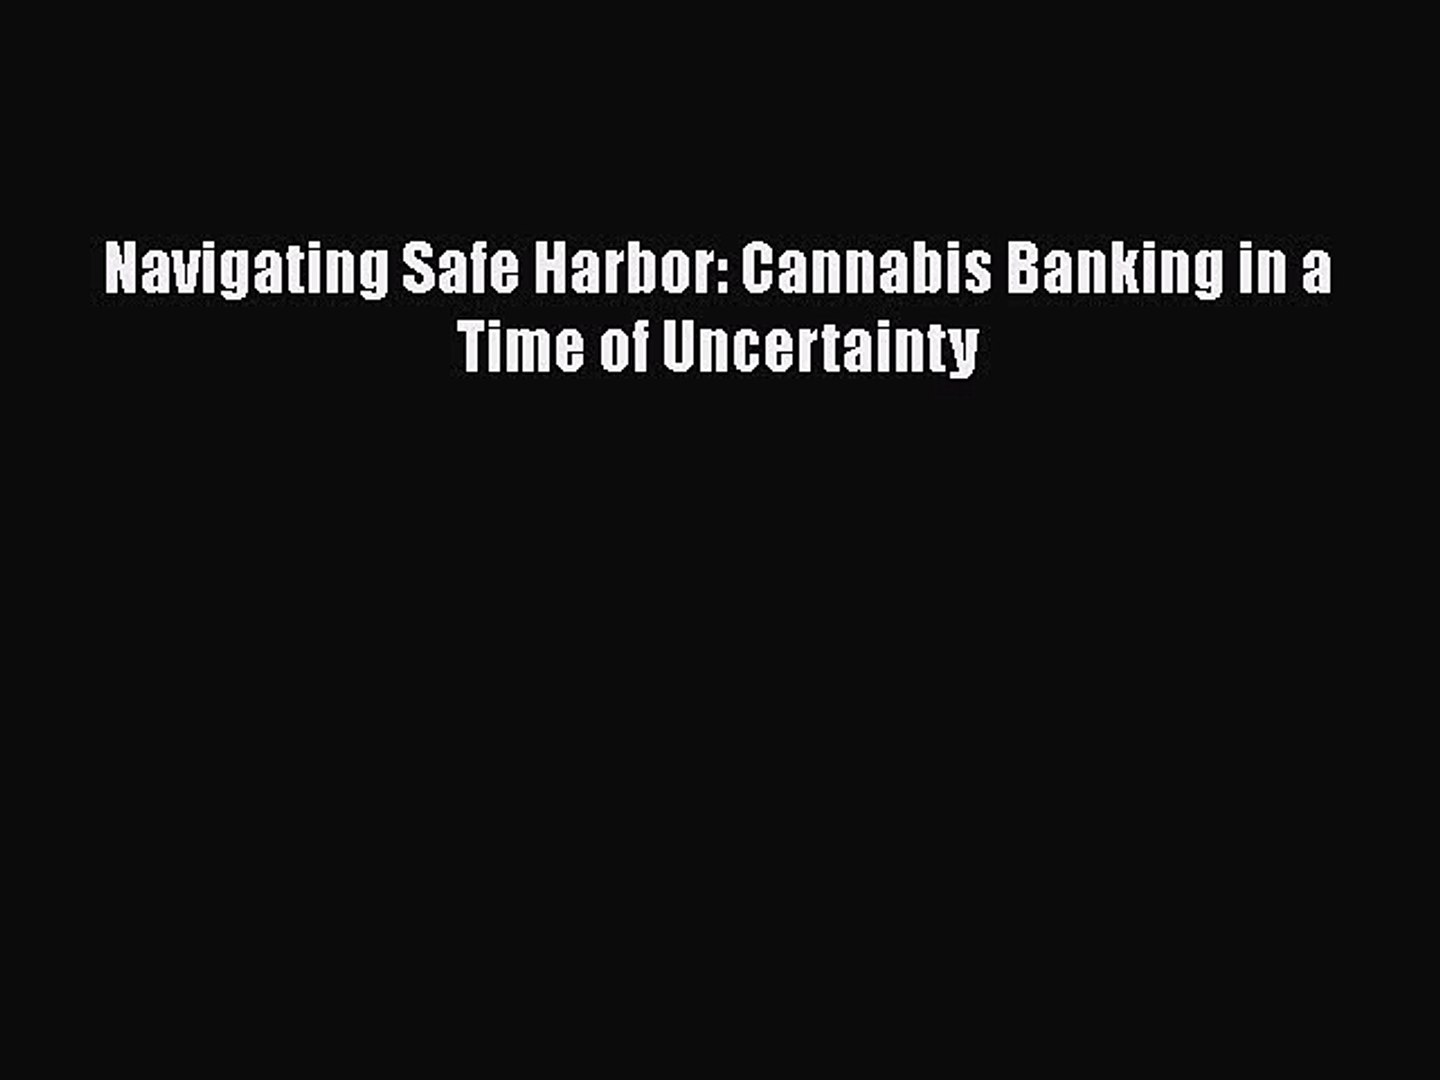 [Online PDF] Navigating Safe Harbor: Cannabis Banking in a Time of Uncertainty  Full EBook